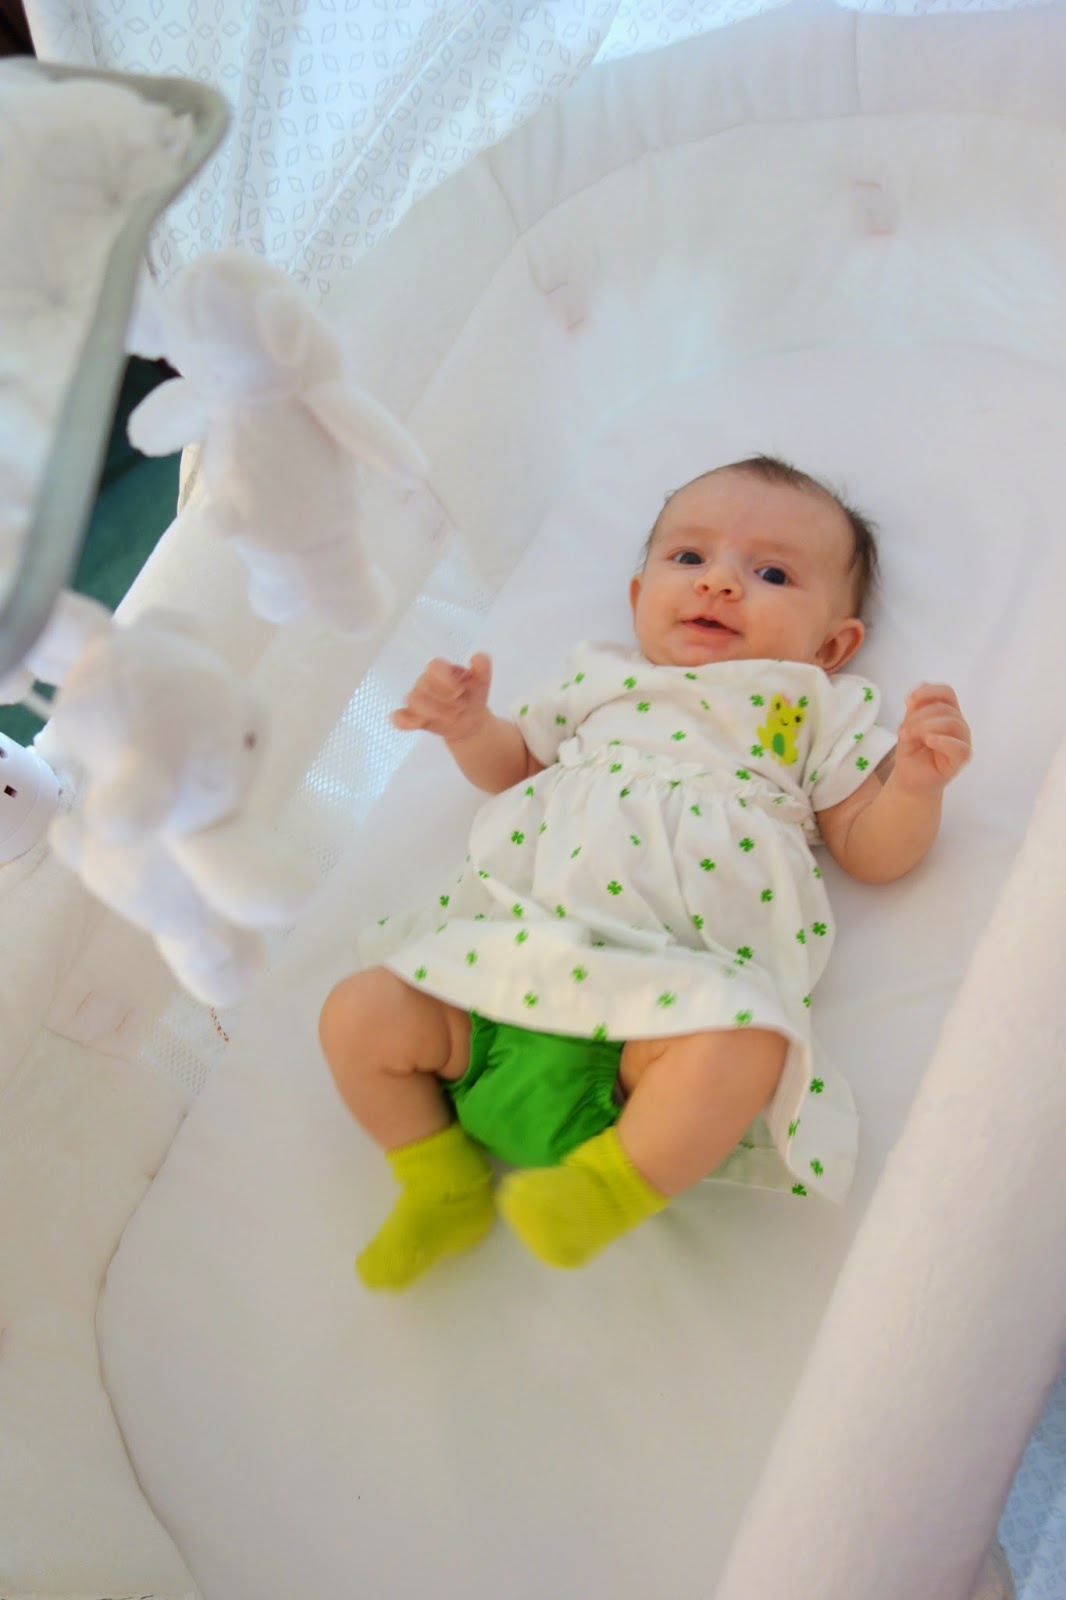 simmons elite gliding bassinet peacock. my newborn niece came over to visit and test it out. simmons elite gliding bassinet peacock s